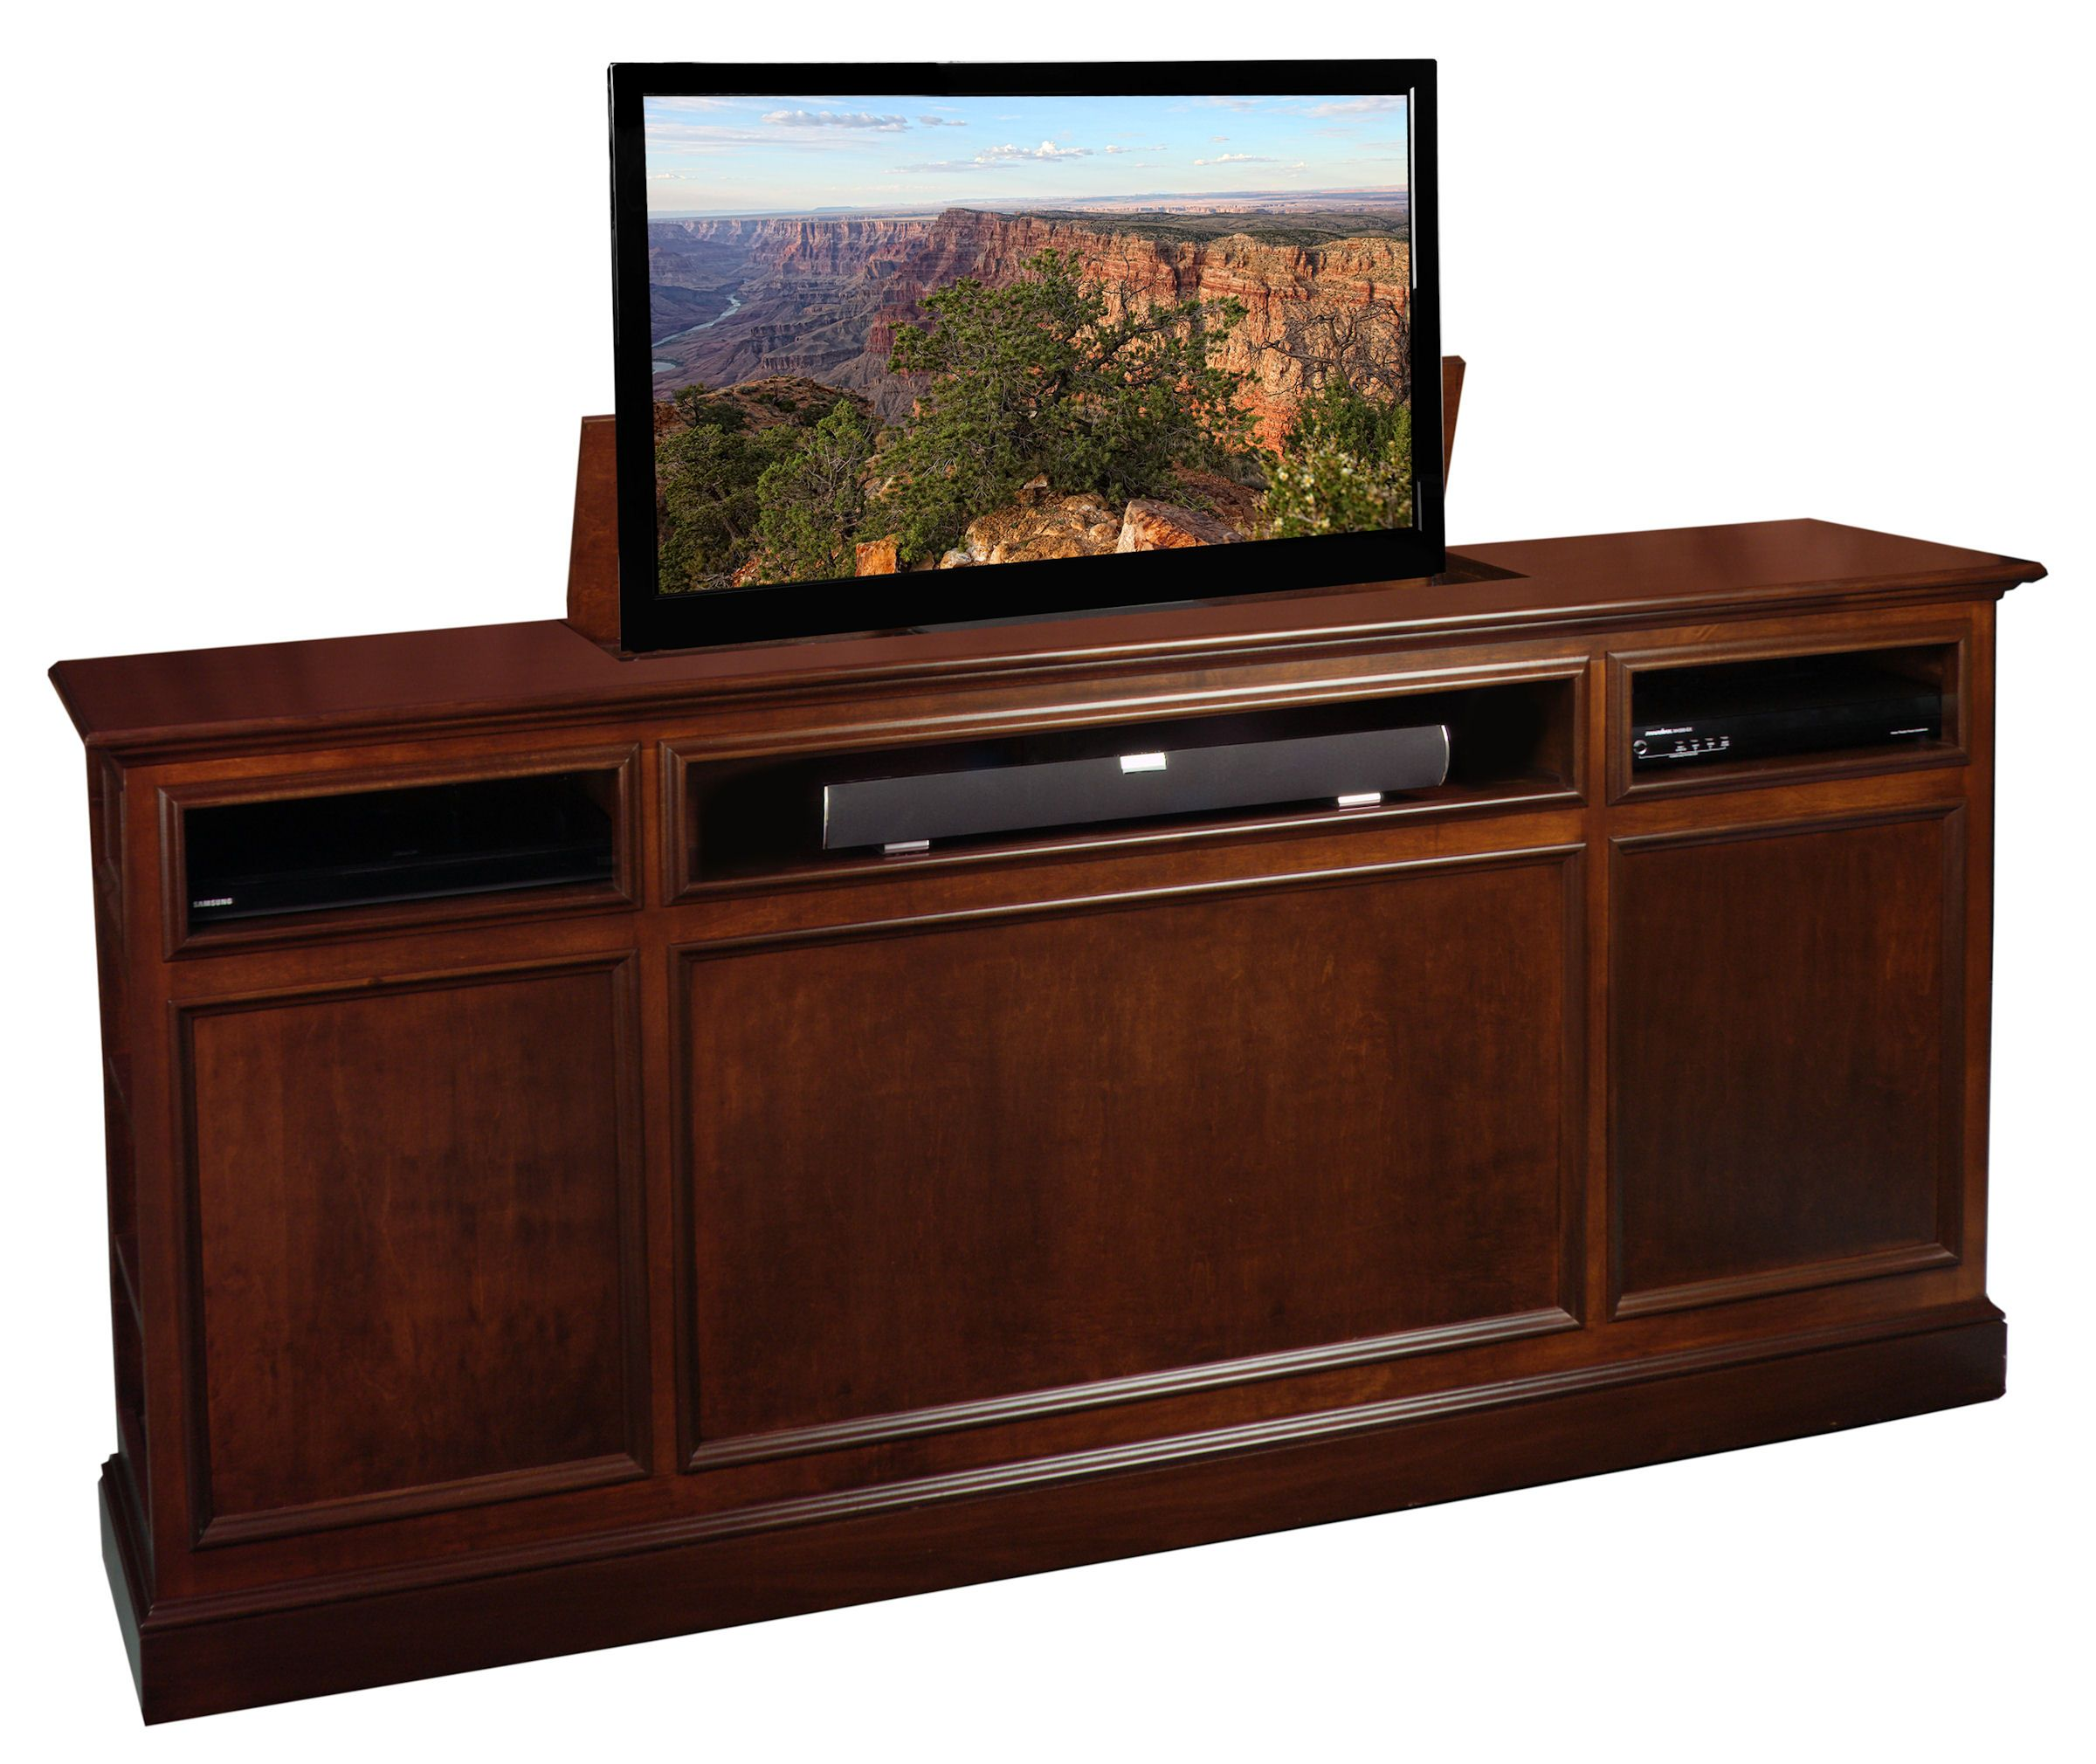 Suite TV Lift This can be used as a footboard to